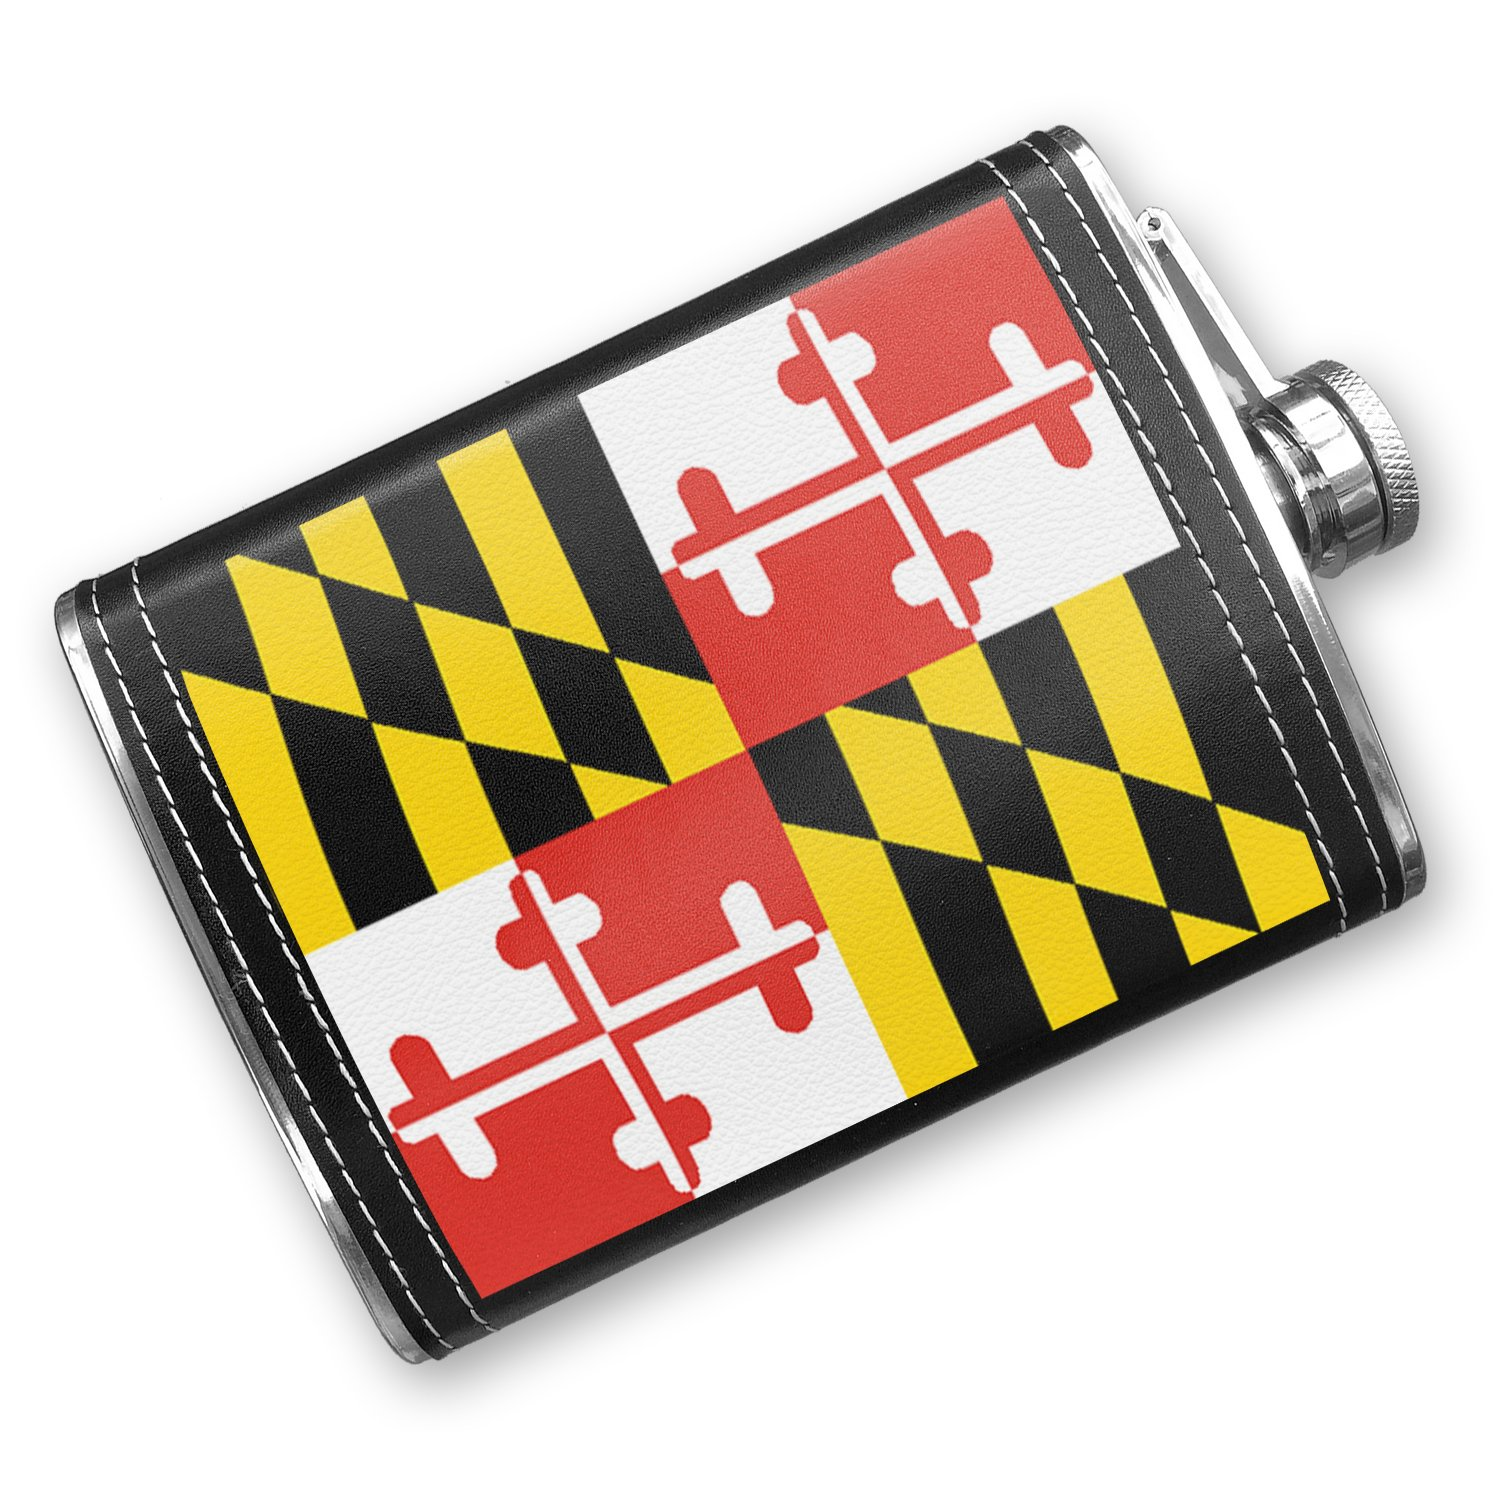 8oz Flask Stitched Maryland Flag region: America (USA) Stainless Steel - Neonblond